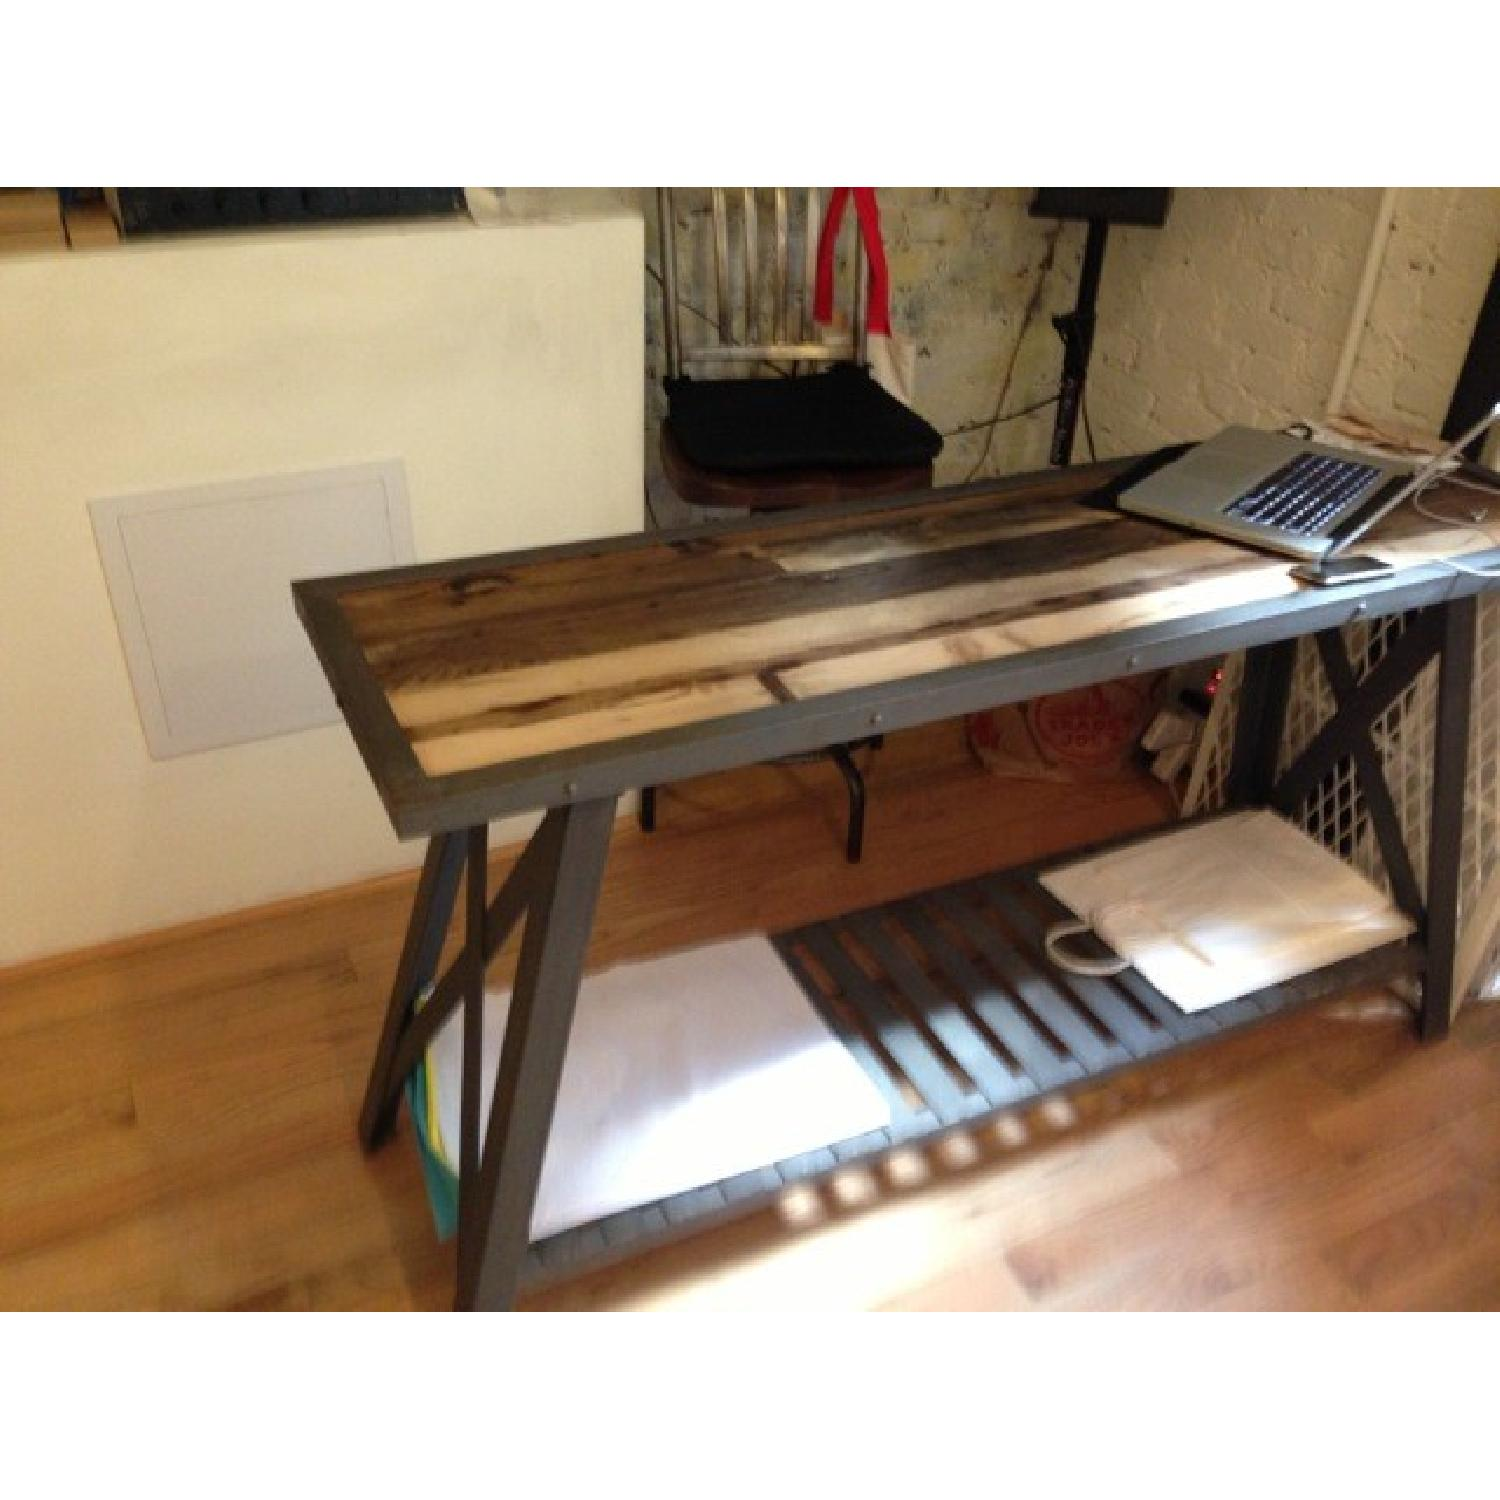 Used cast iron wood console table for sale in nyc aptdeco - Used console table for sale ...